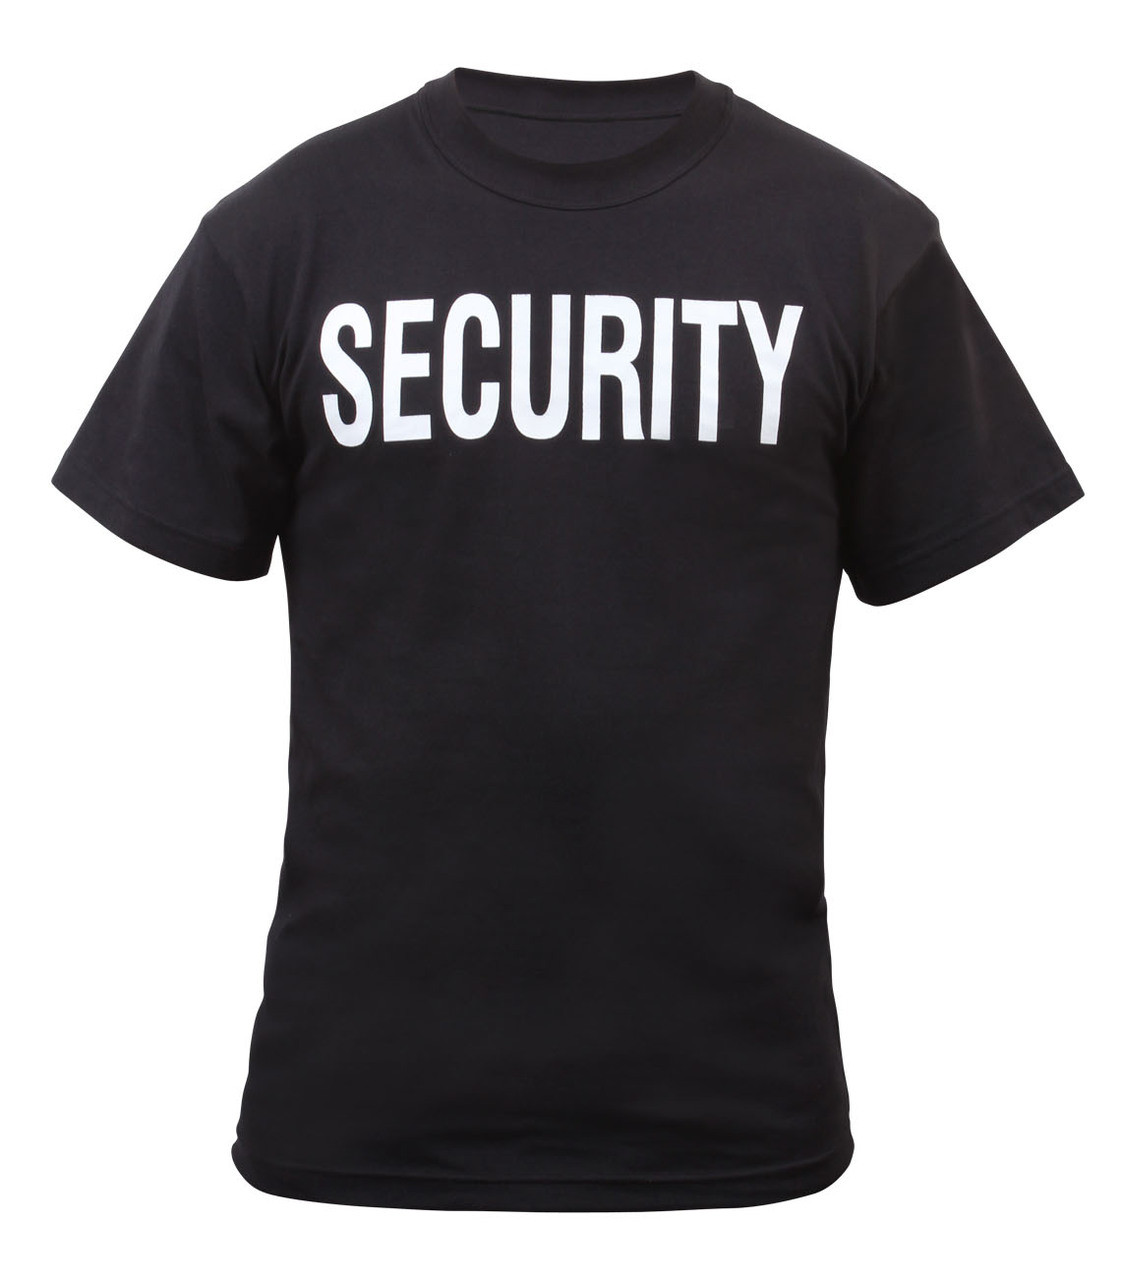 0a5114956 2 Sided Security T-Shirt - Mickey's Surplus